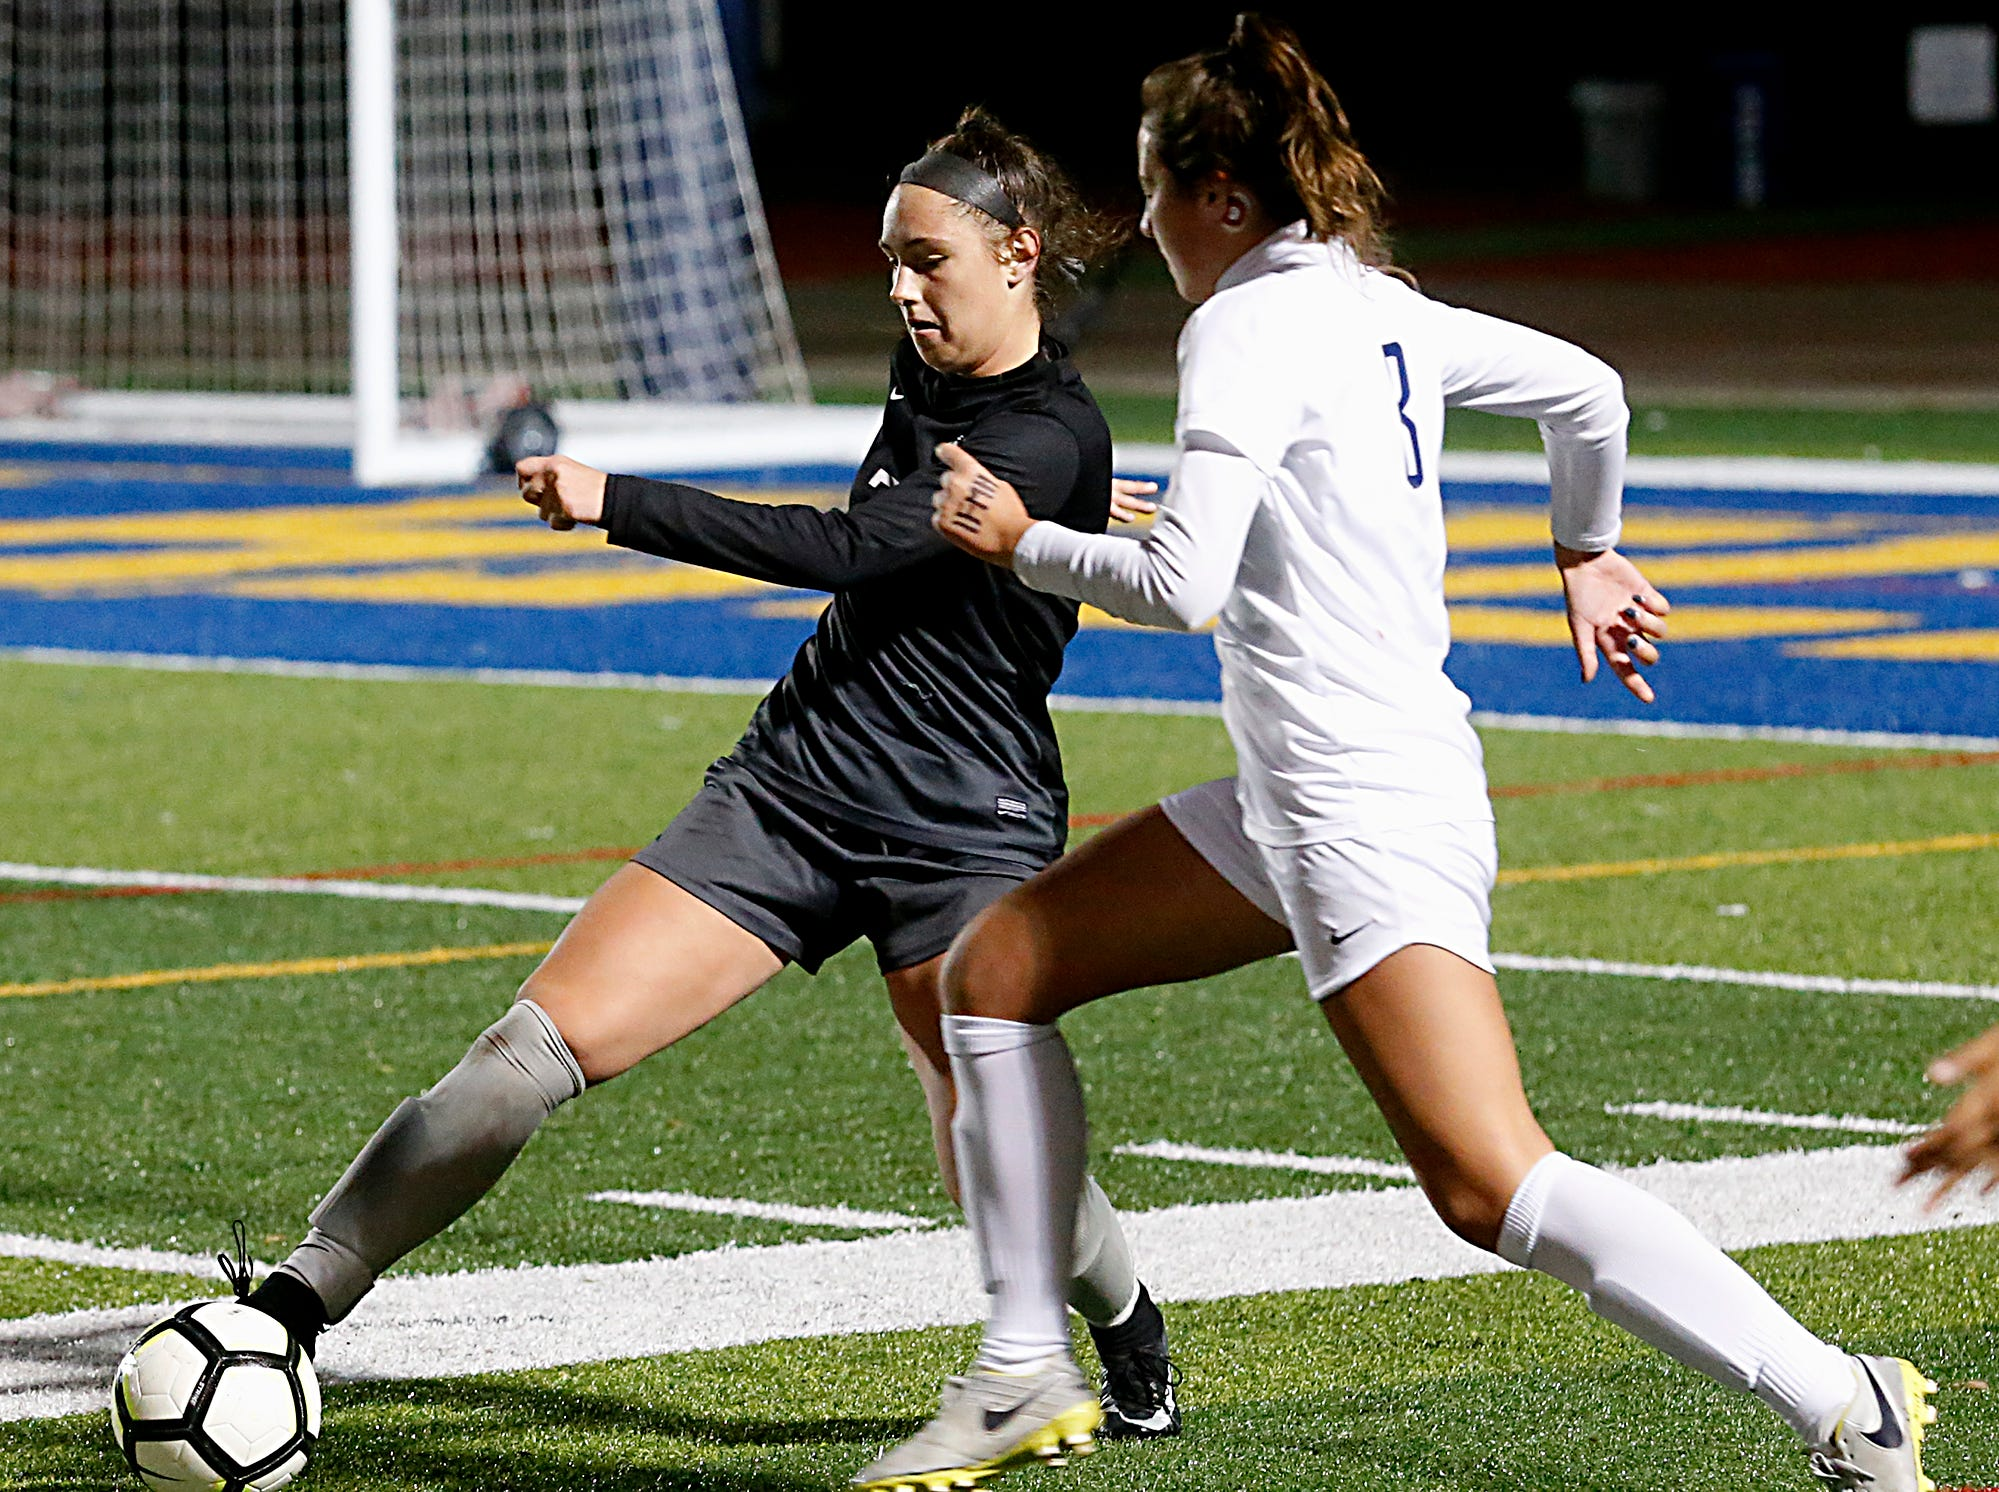 Lakota East forward Kate Larbes controls the ball as Mount Notre Dame forward Emily Wittekind tries to steal during their Division I Southwest district final soccer game at Walnut Hills in Cincinnati Saturday, Oct. 27, 2018.